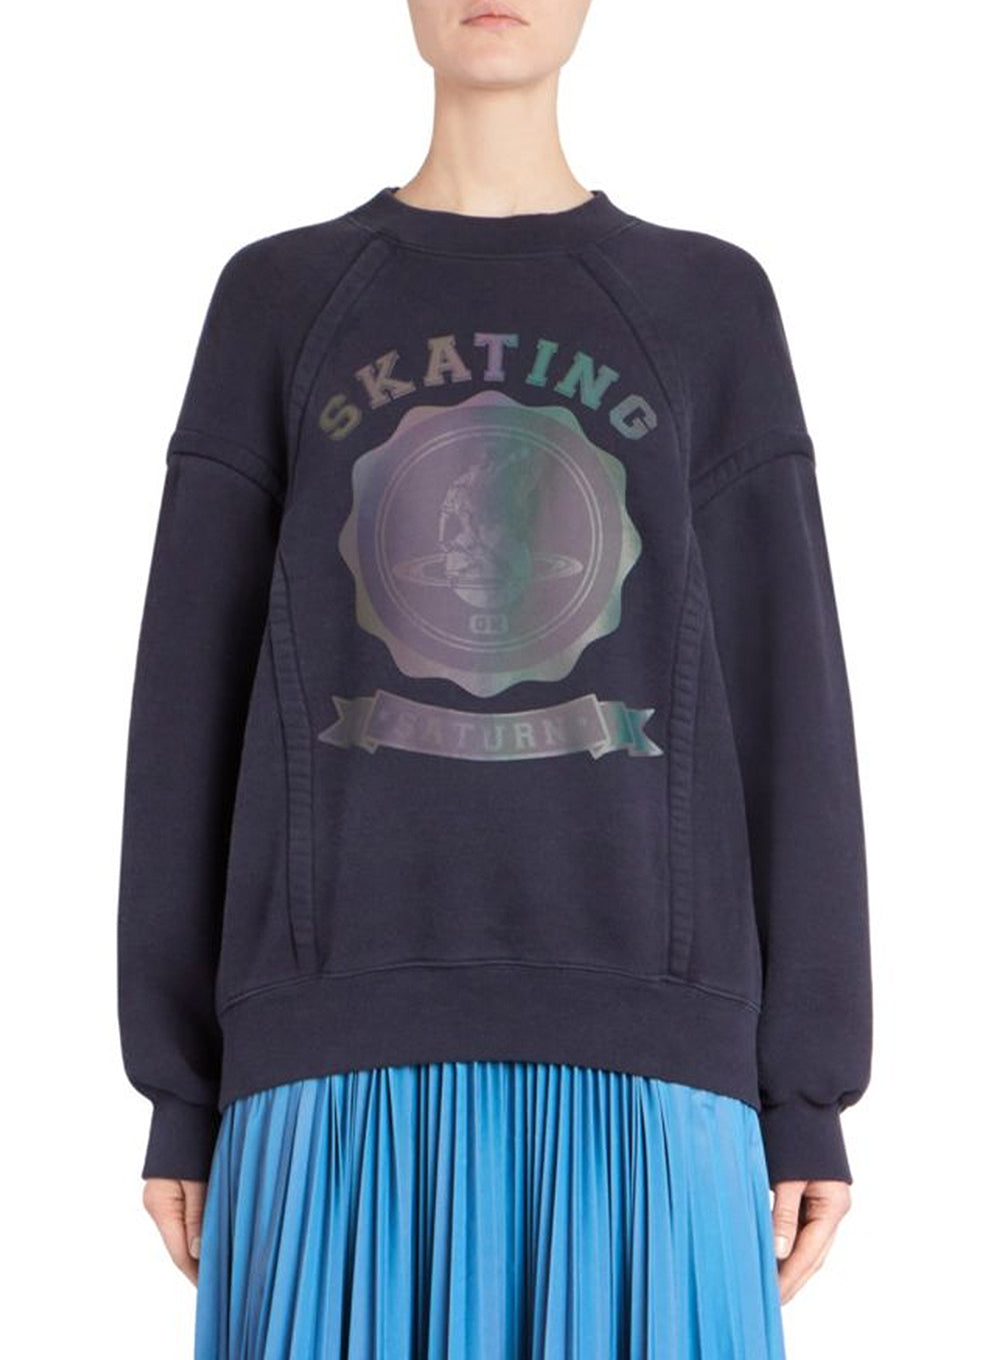 MAISON MARGELA | Skating Saturn Graphic Crewneck Sweatshirt in Navy